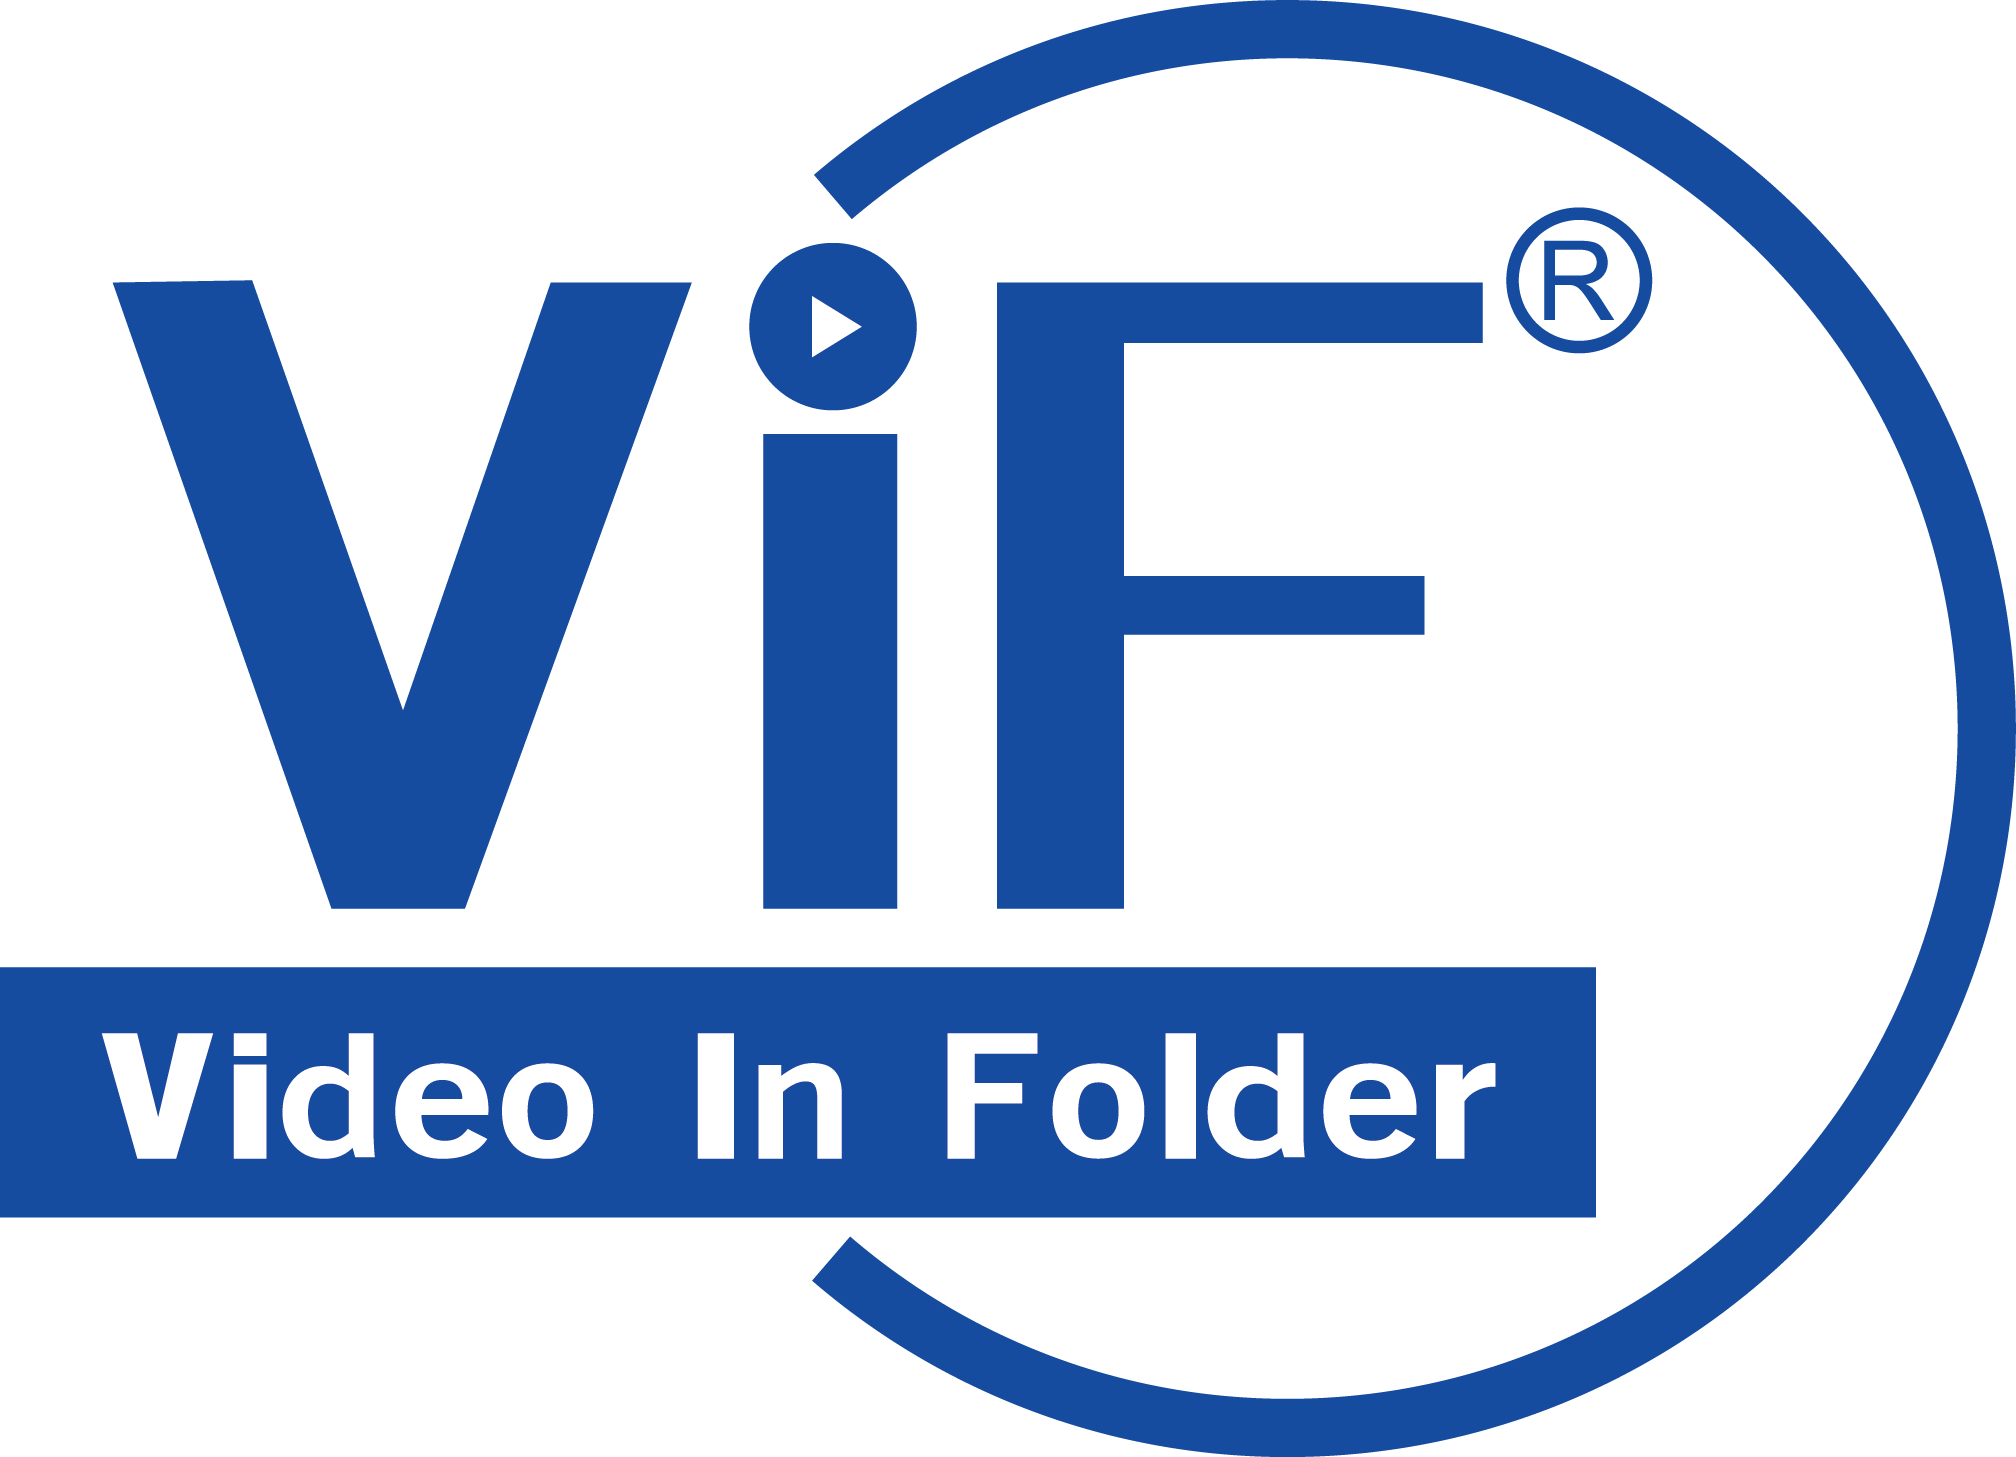 Shenzhen Videoinfolder Technology Co., Ltd